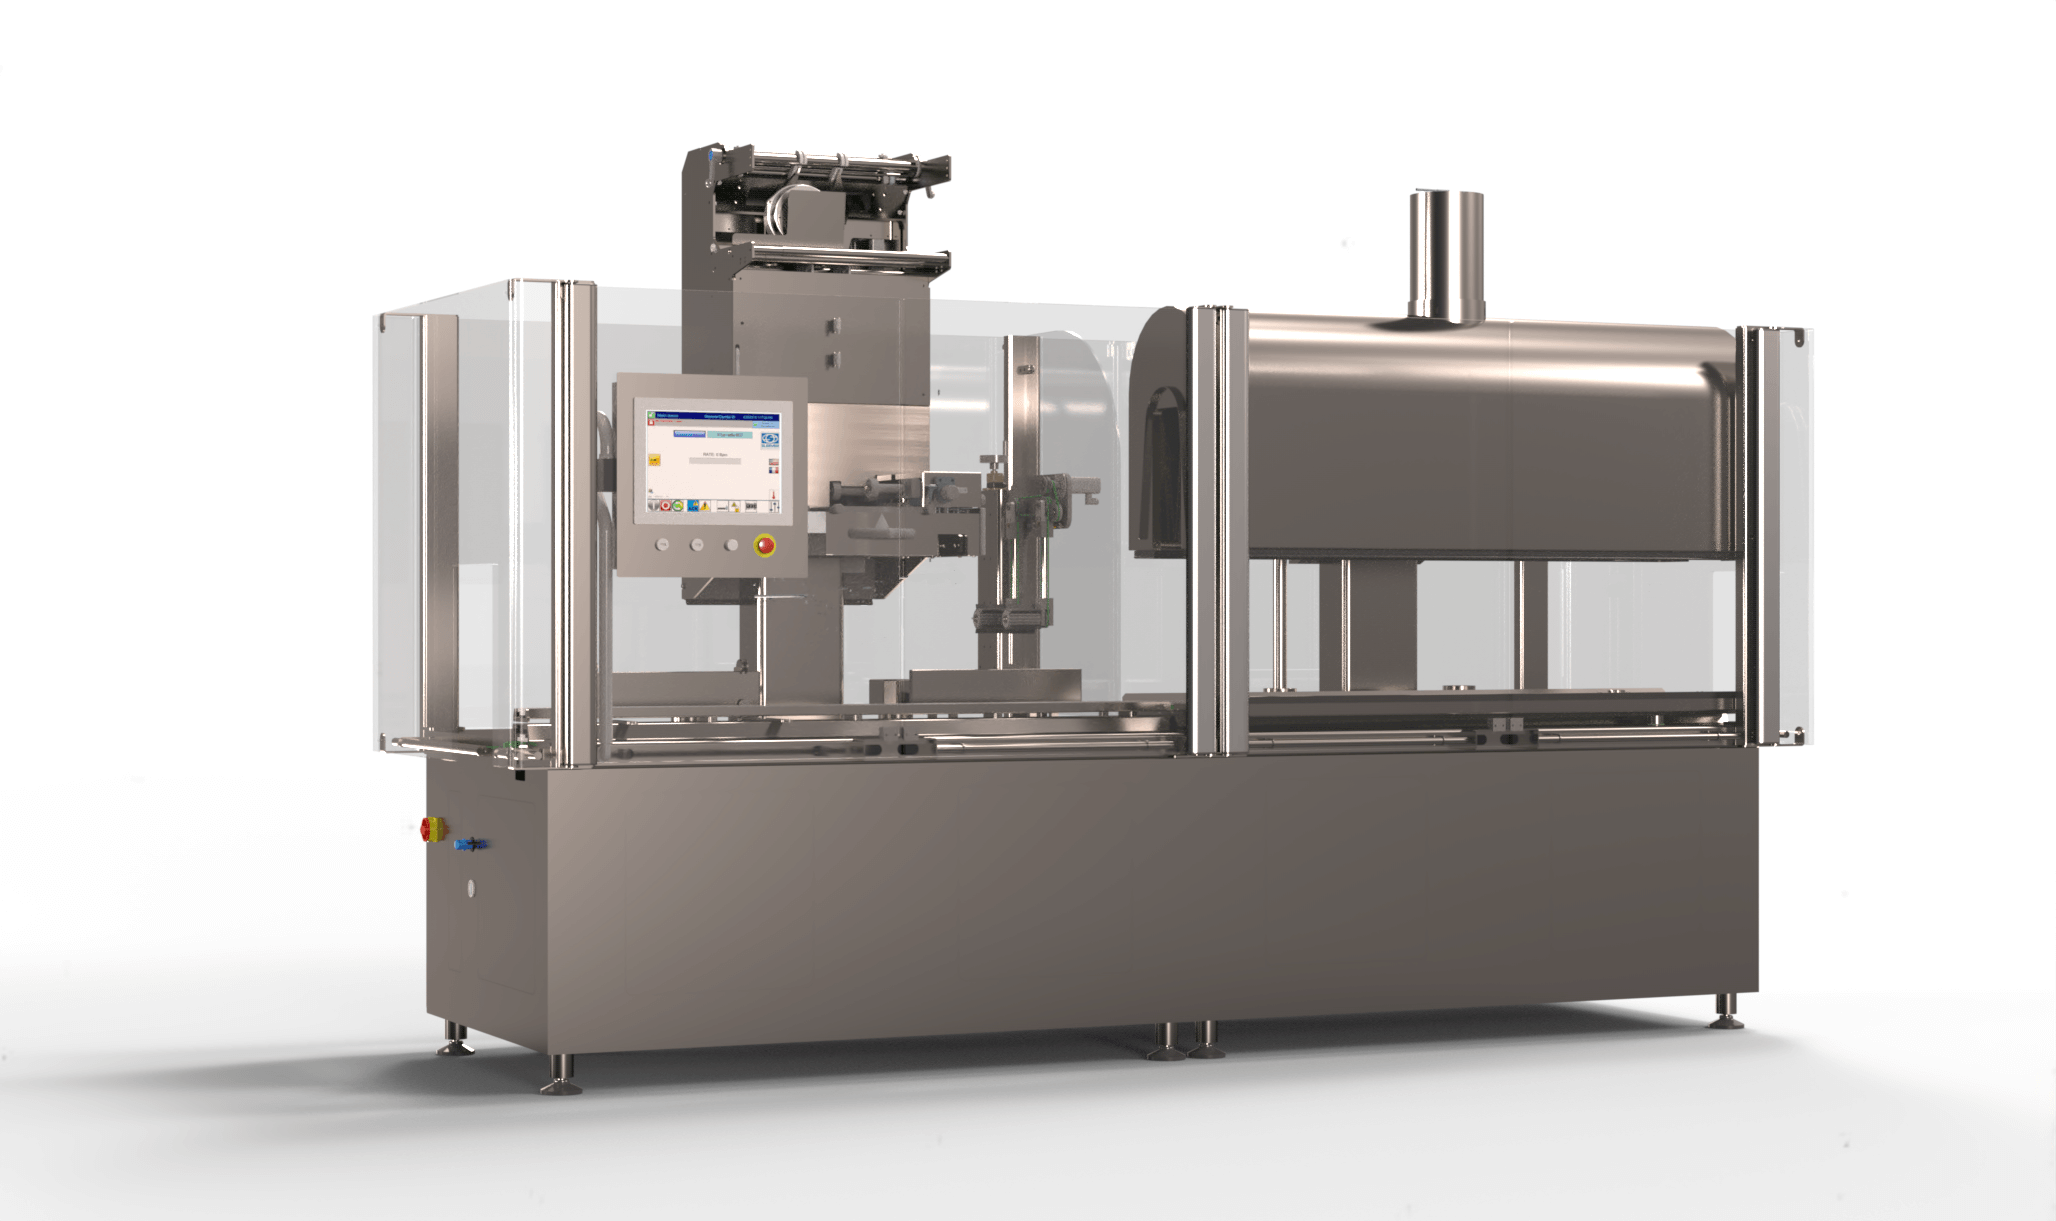 A compact packaging machine including a Sleeve label application head and a shrink tunnel